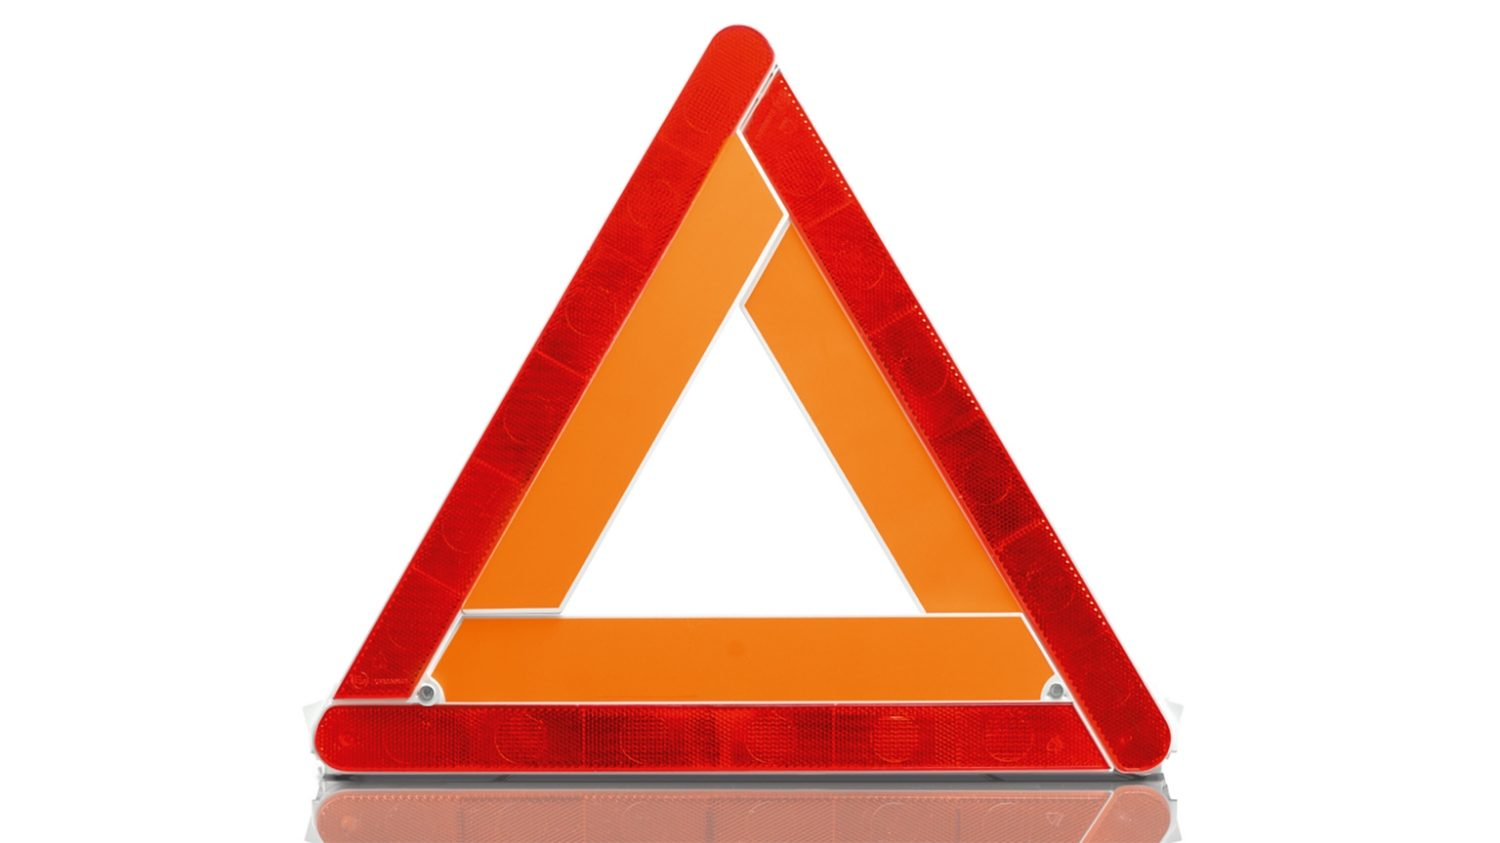 Nissan NV200 - Safety - Warning triangle